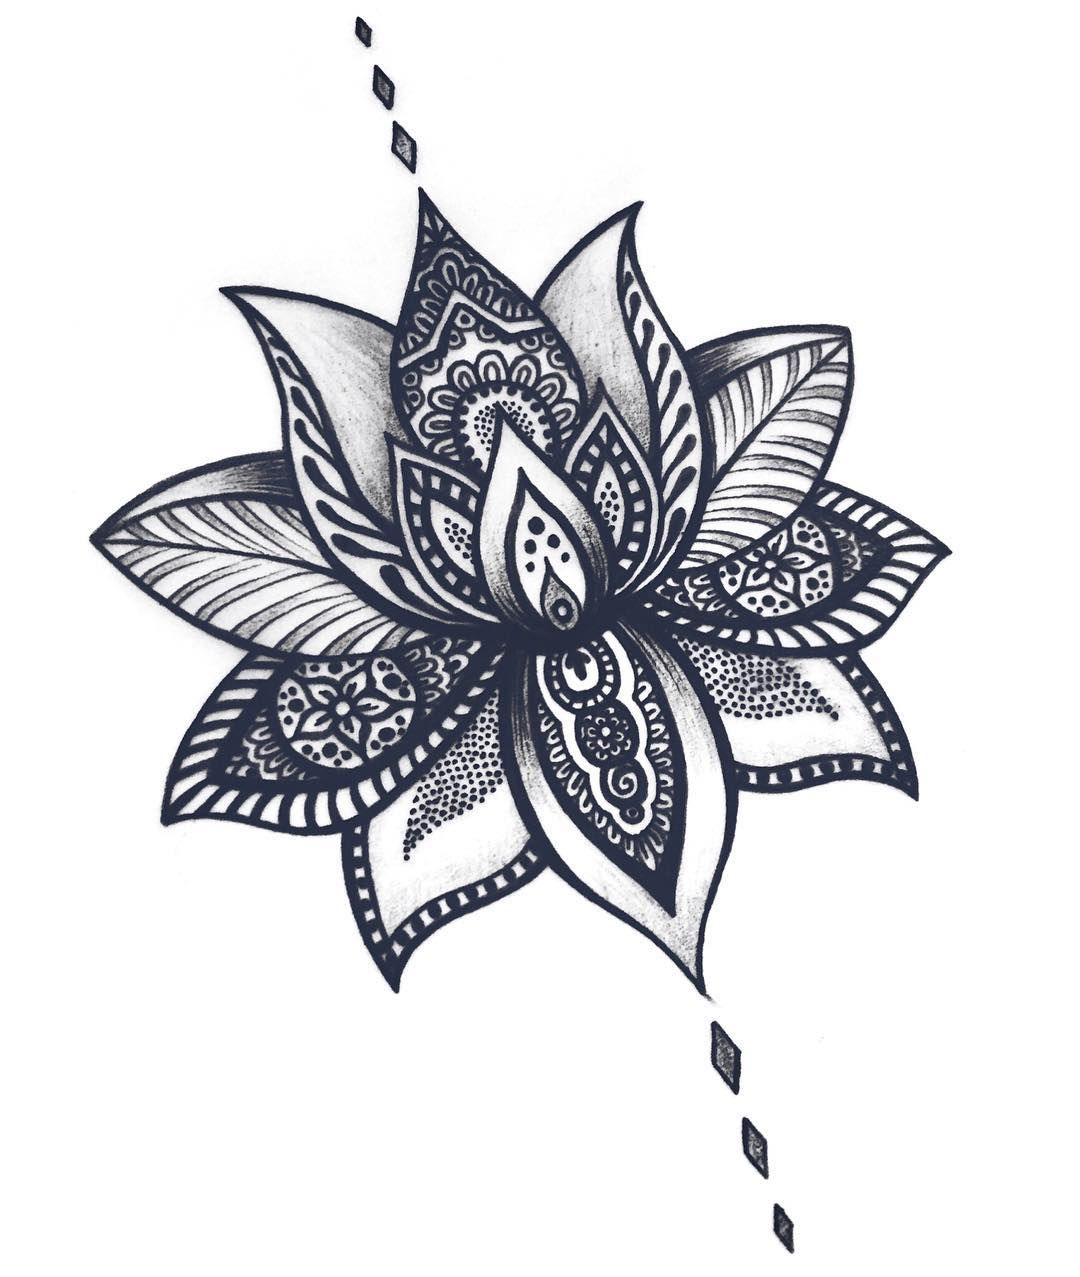 See this instagram photo by helenalloretart 1227 likes helena lloret tattooing on instagram lotus flower tattoo design to the one and only gemmafibla7 flordeloto lotusflower lotus tattoo izmirmasajfo